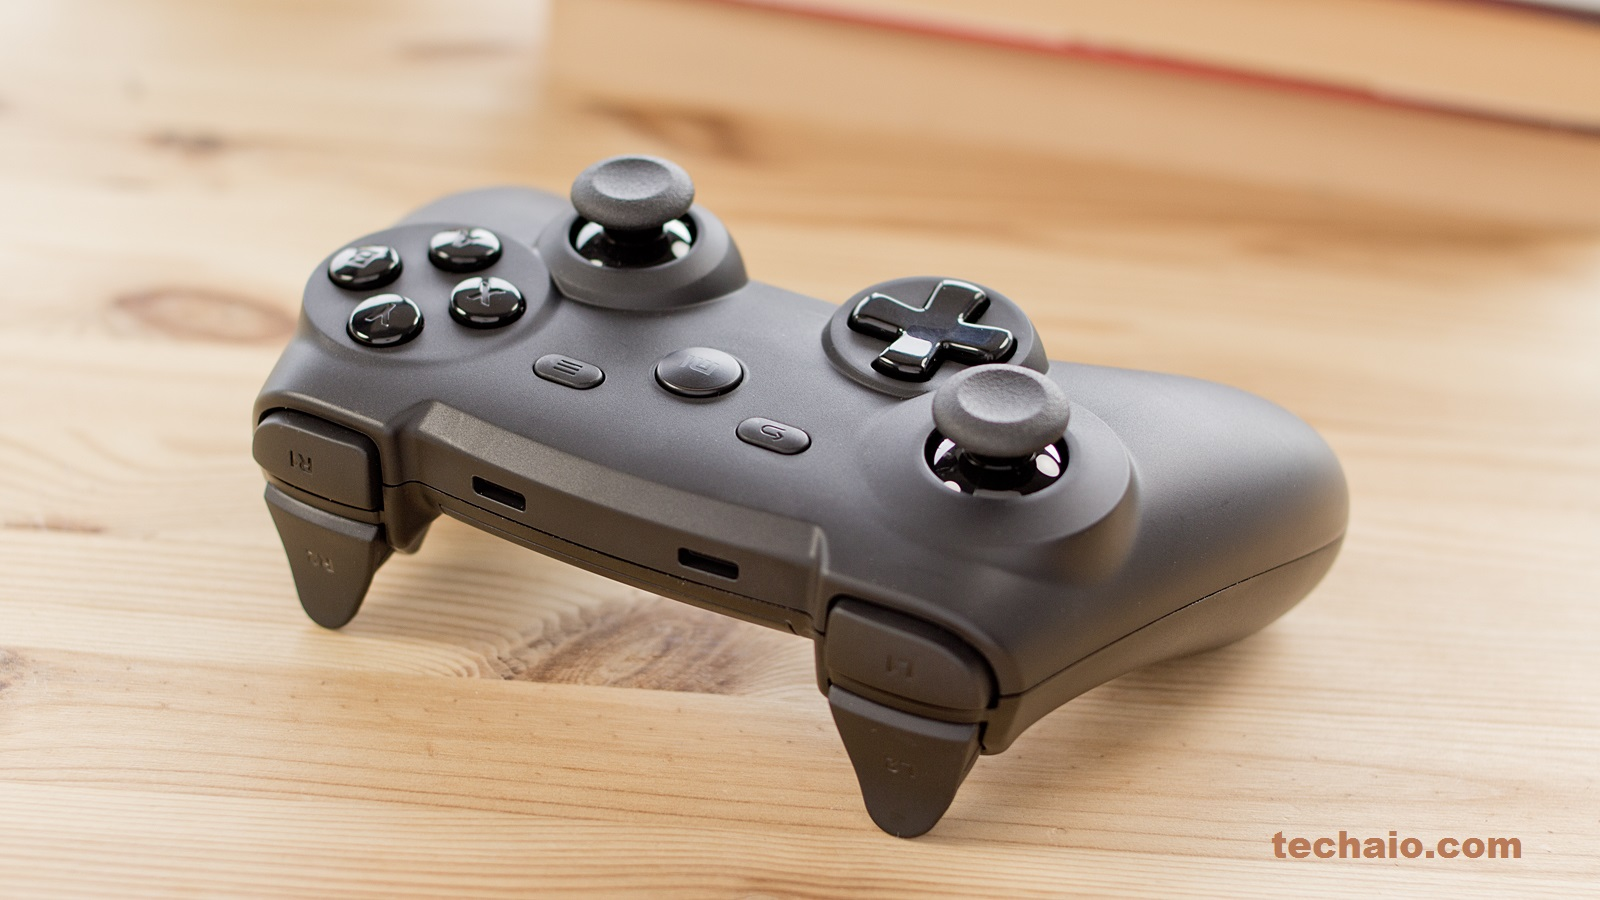 Top 5 GamePad For PC Under Rs. 1000 In India